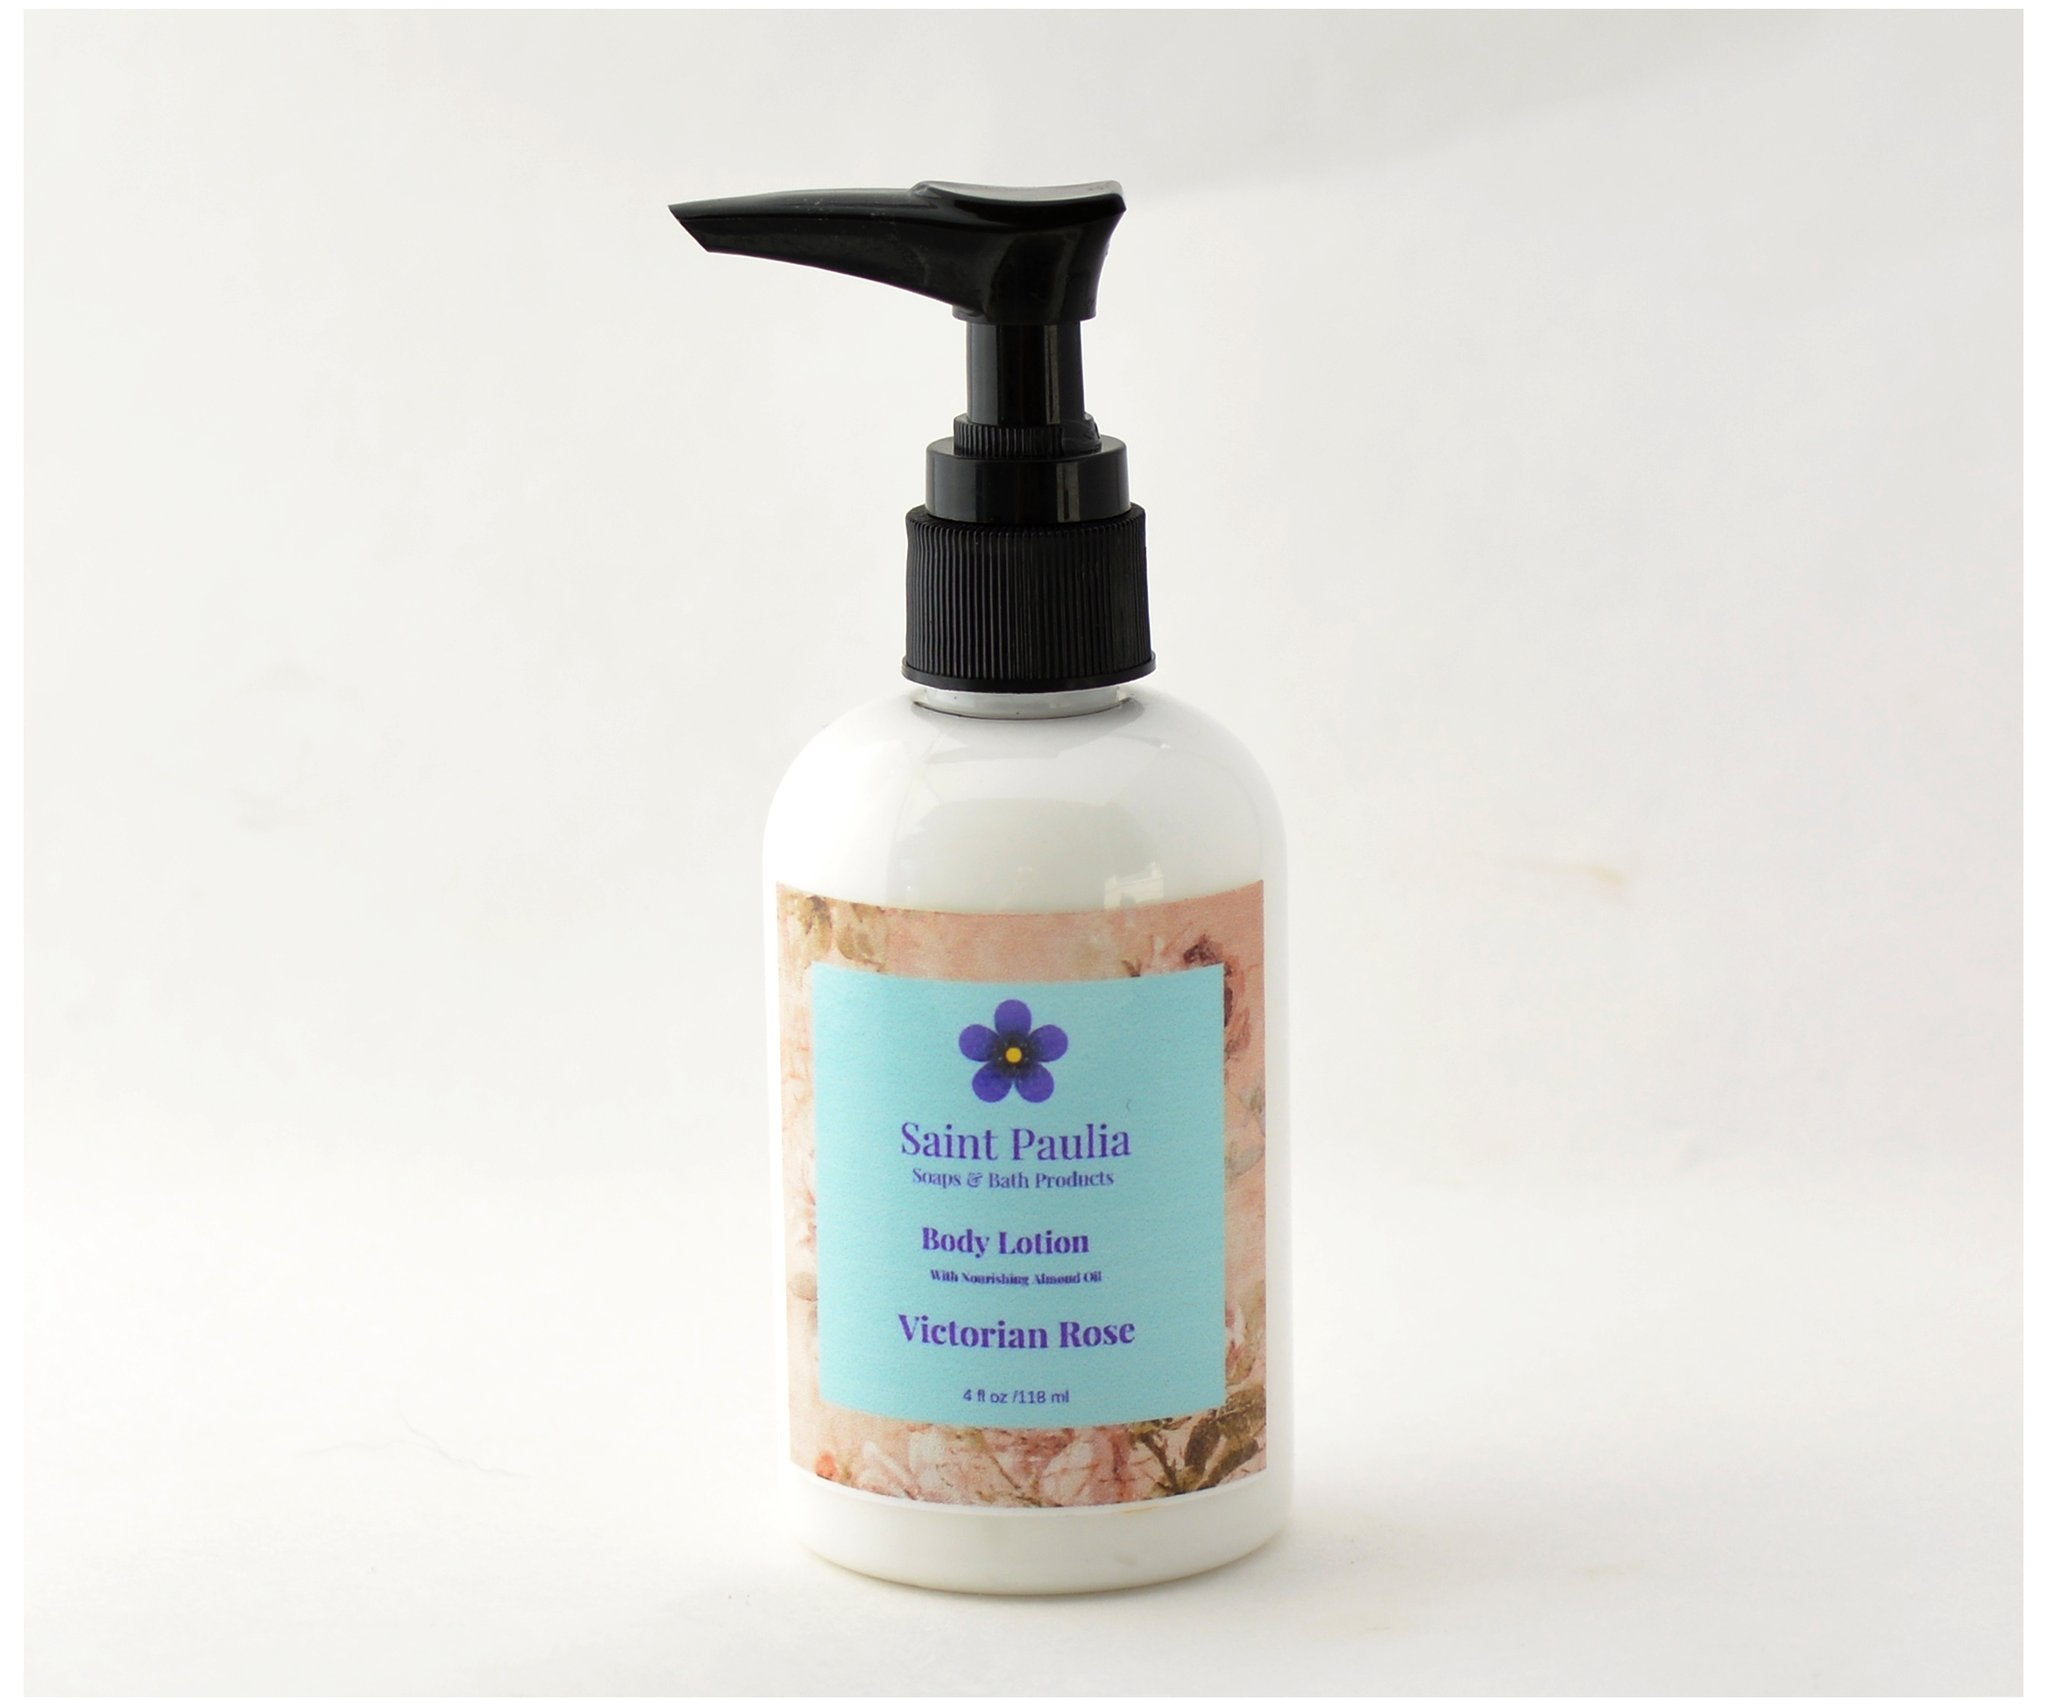 Victorian Rose Body Lotion